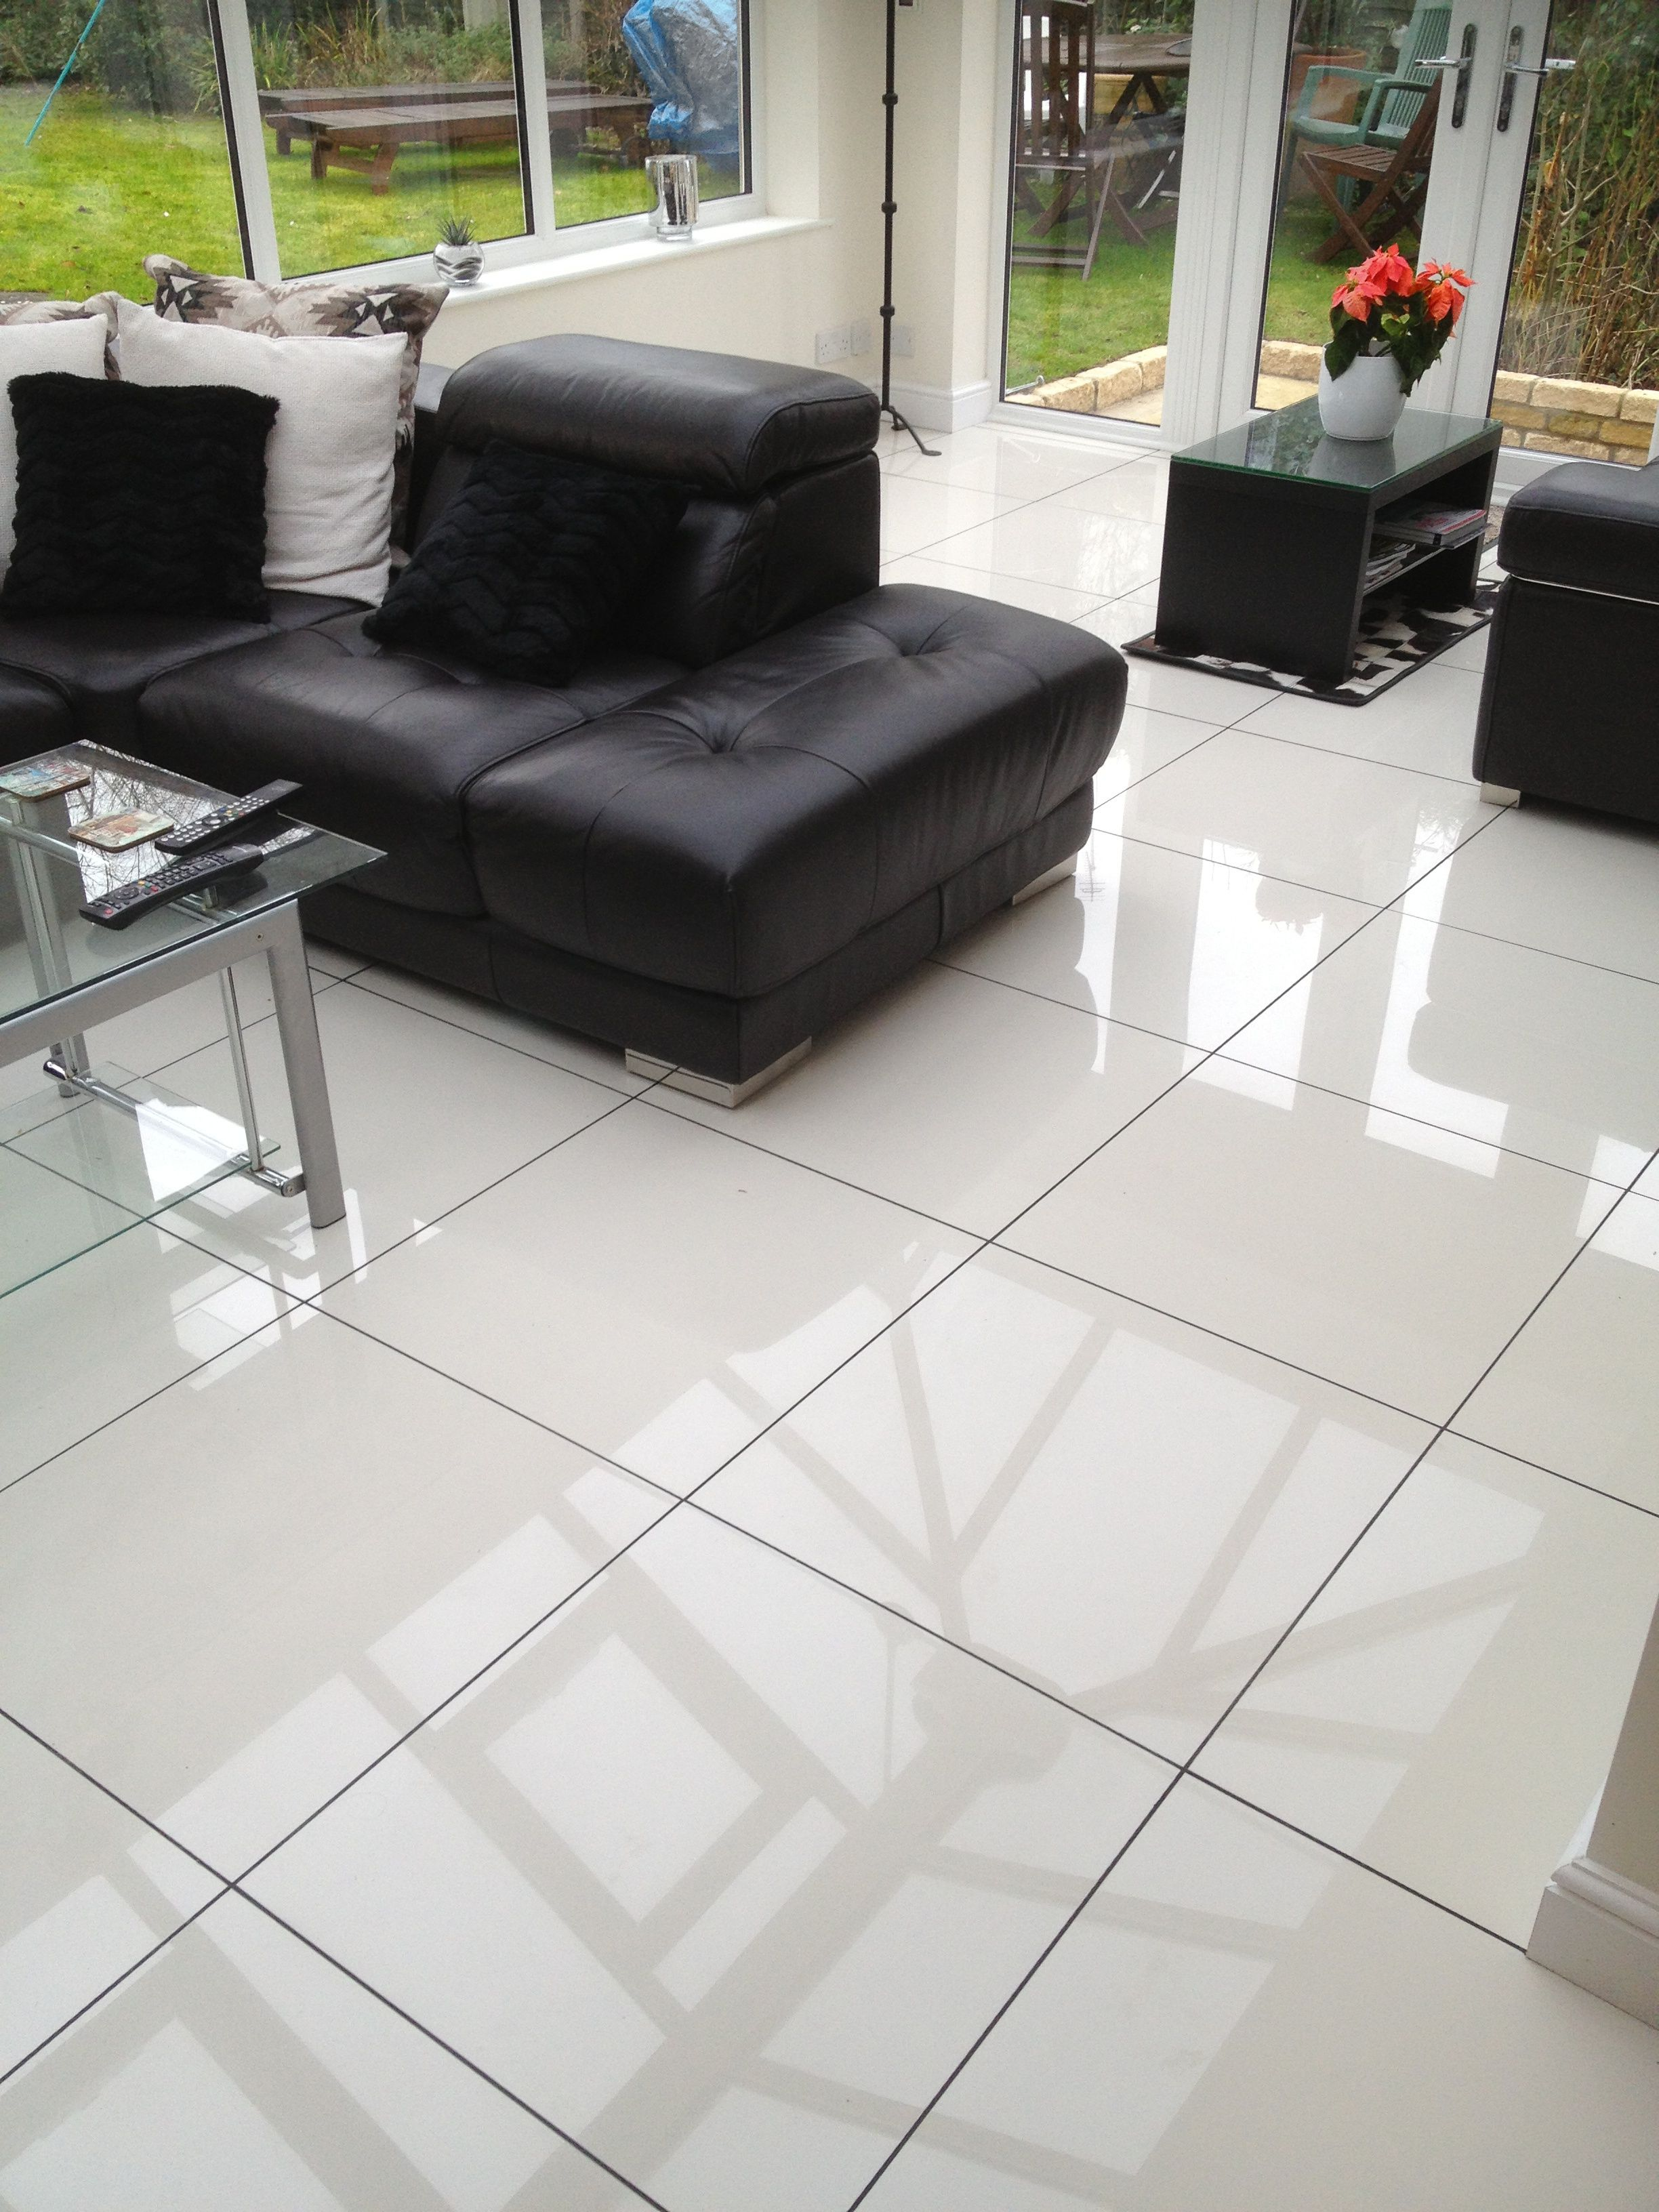 White gloss porcelain tiles cheltenham pin it pinterest white gloss porcelain tiles cheltenham dailygadgetfo Images